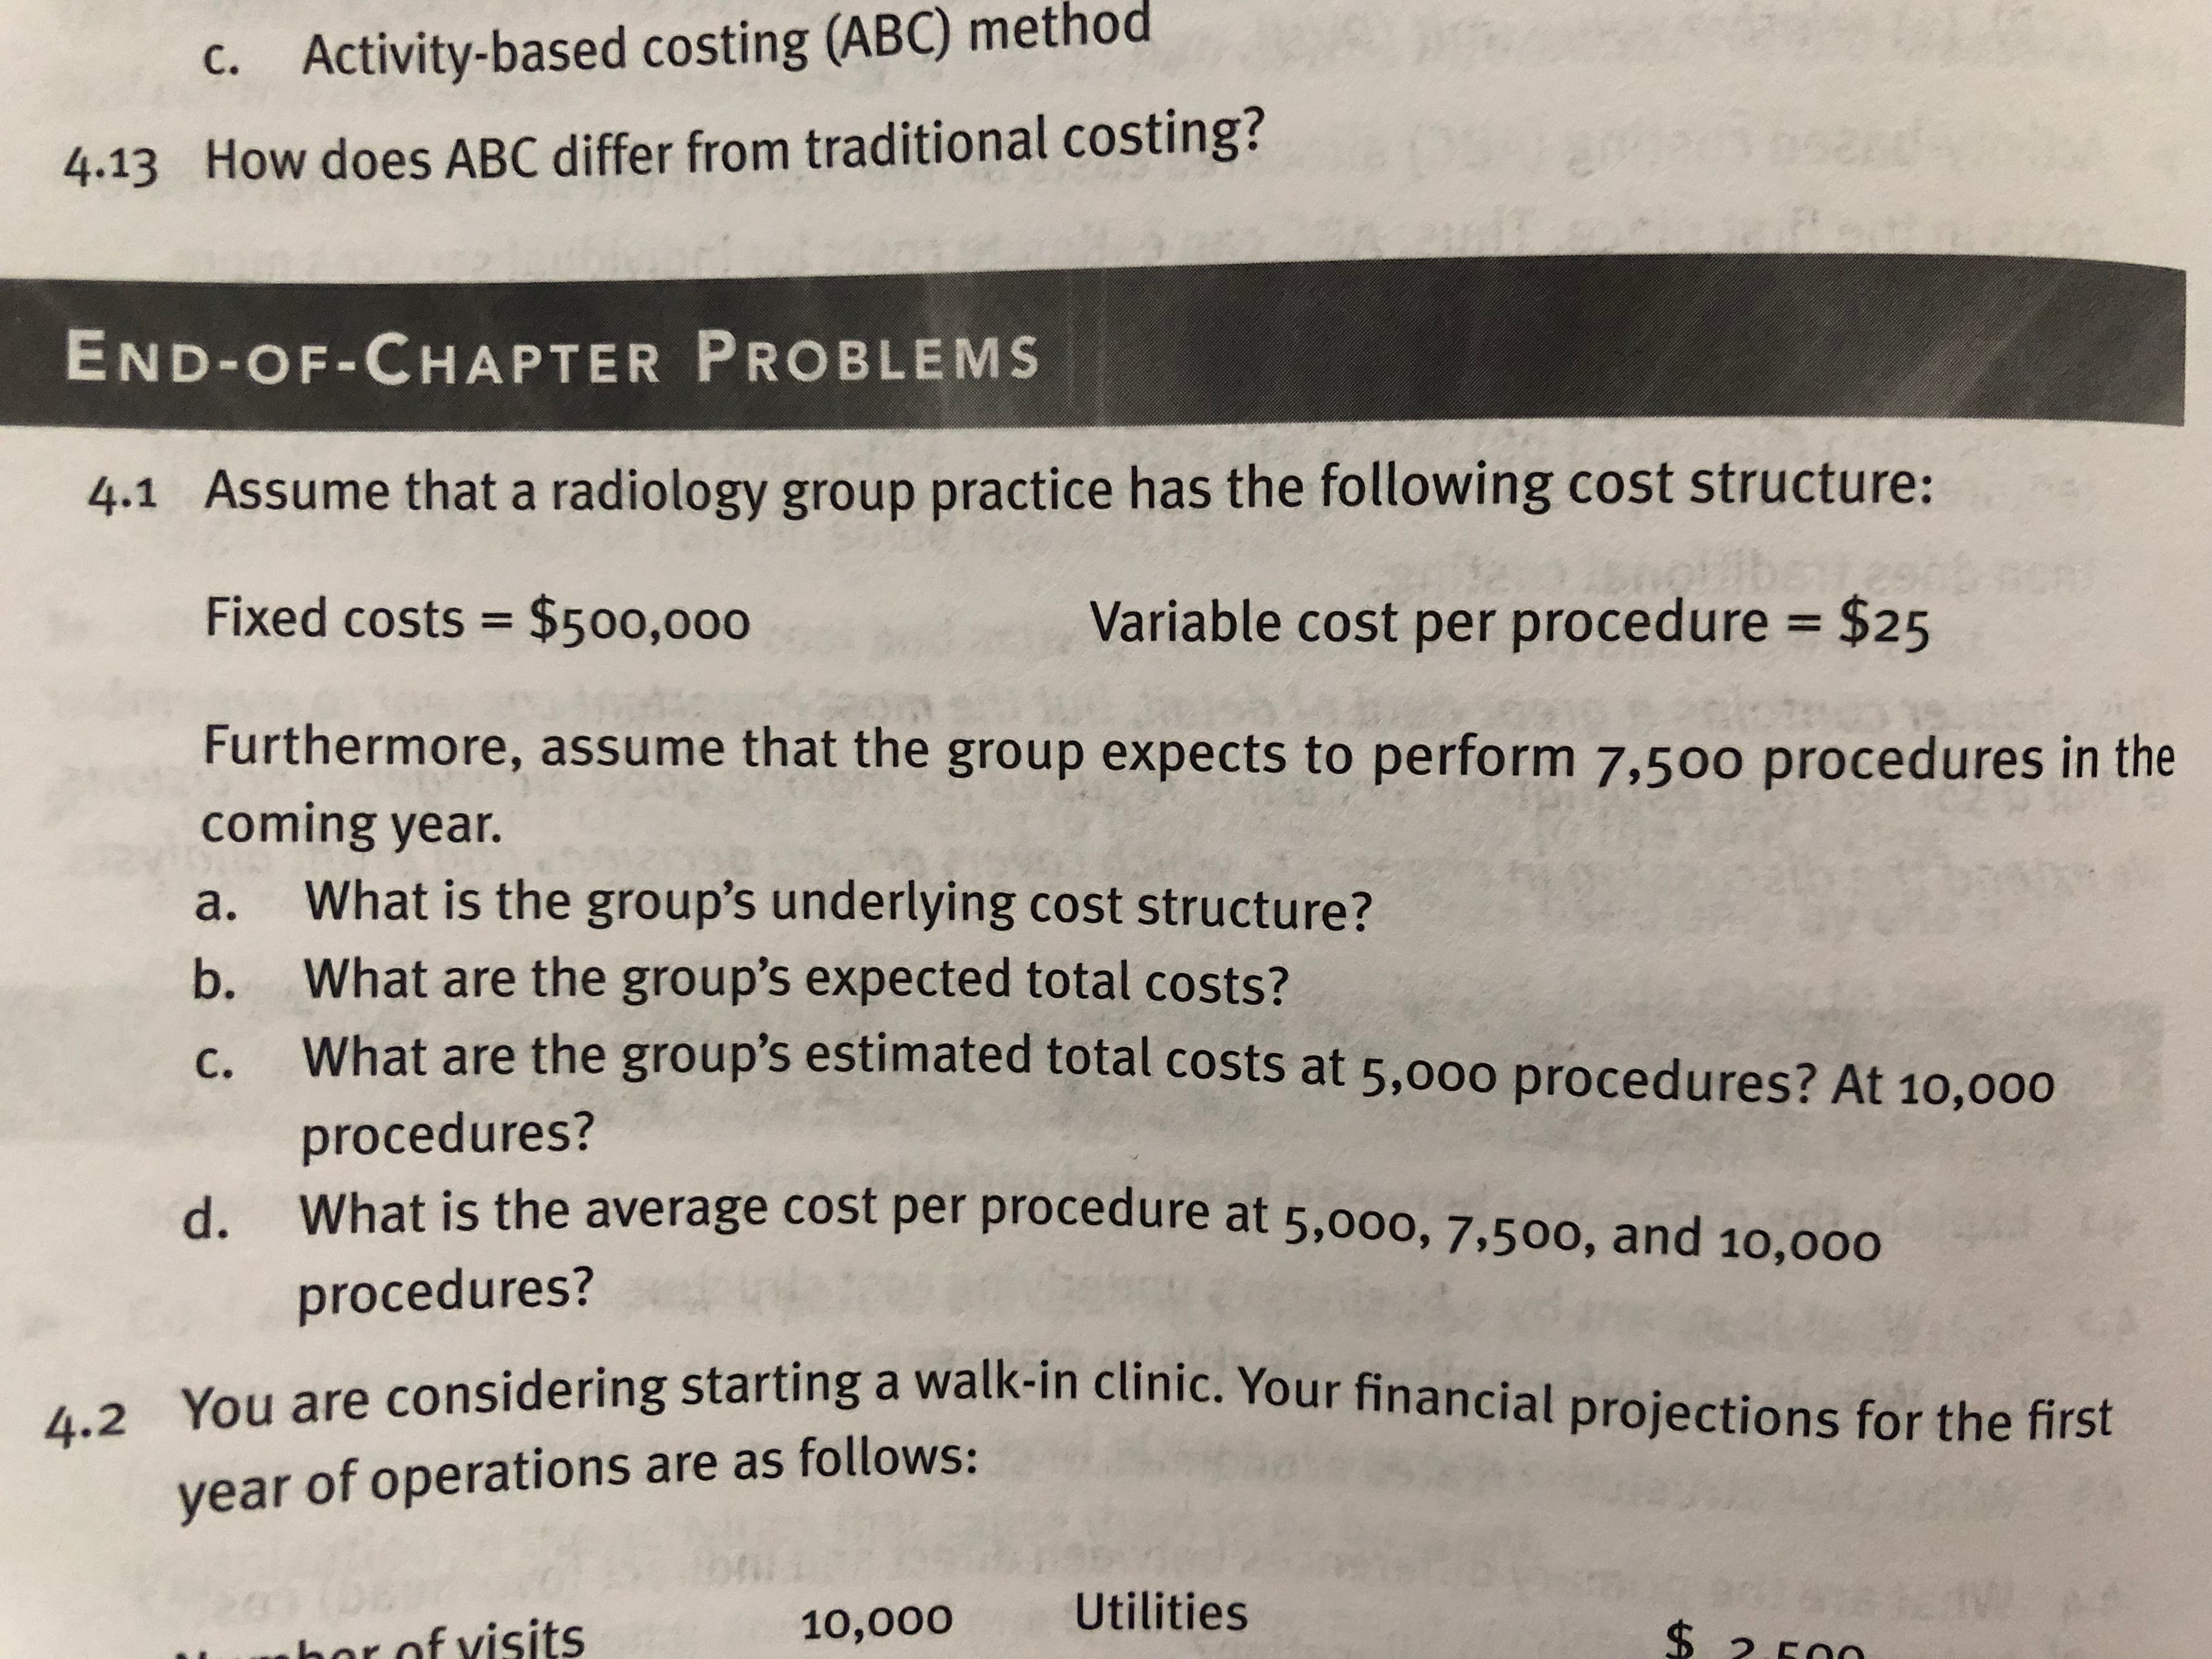 Activity-based costing (ABC) method c. 4.13 How does ABC differ from traditional costing? END-OF-CHAPTER PROBLEMS 4.1 Assume that a radiology group practice has the following cost structure: Fixed costs $500,0oo $25 Variable cost per procedure Furthermore, assume that the group expects to perform 7,500 procedures in the coming year. a. What is the group's underlying cost structure? b. What are the group's expected total costs? What are the group's estimated total costs at 5,0oo procedures? At 10,00o procedures? What is the average cost per procedure at 5,000, 7.500, and 10,000 procedures? c. d. dering starting a walk-in clinic. Your financial projections for the first year of operations are as follows 10,000Utilities r nf visits